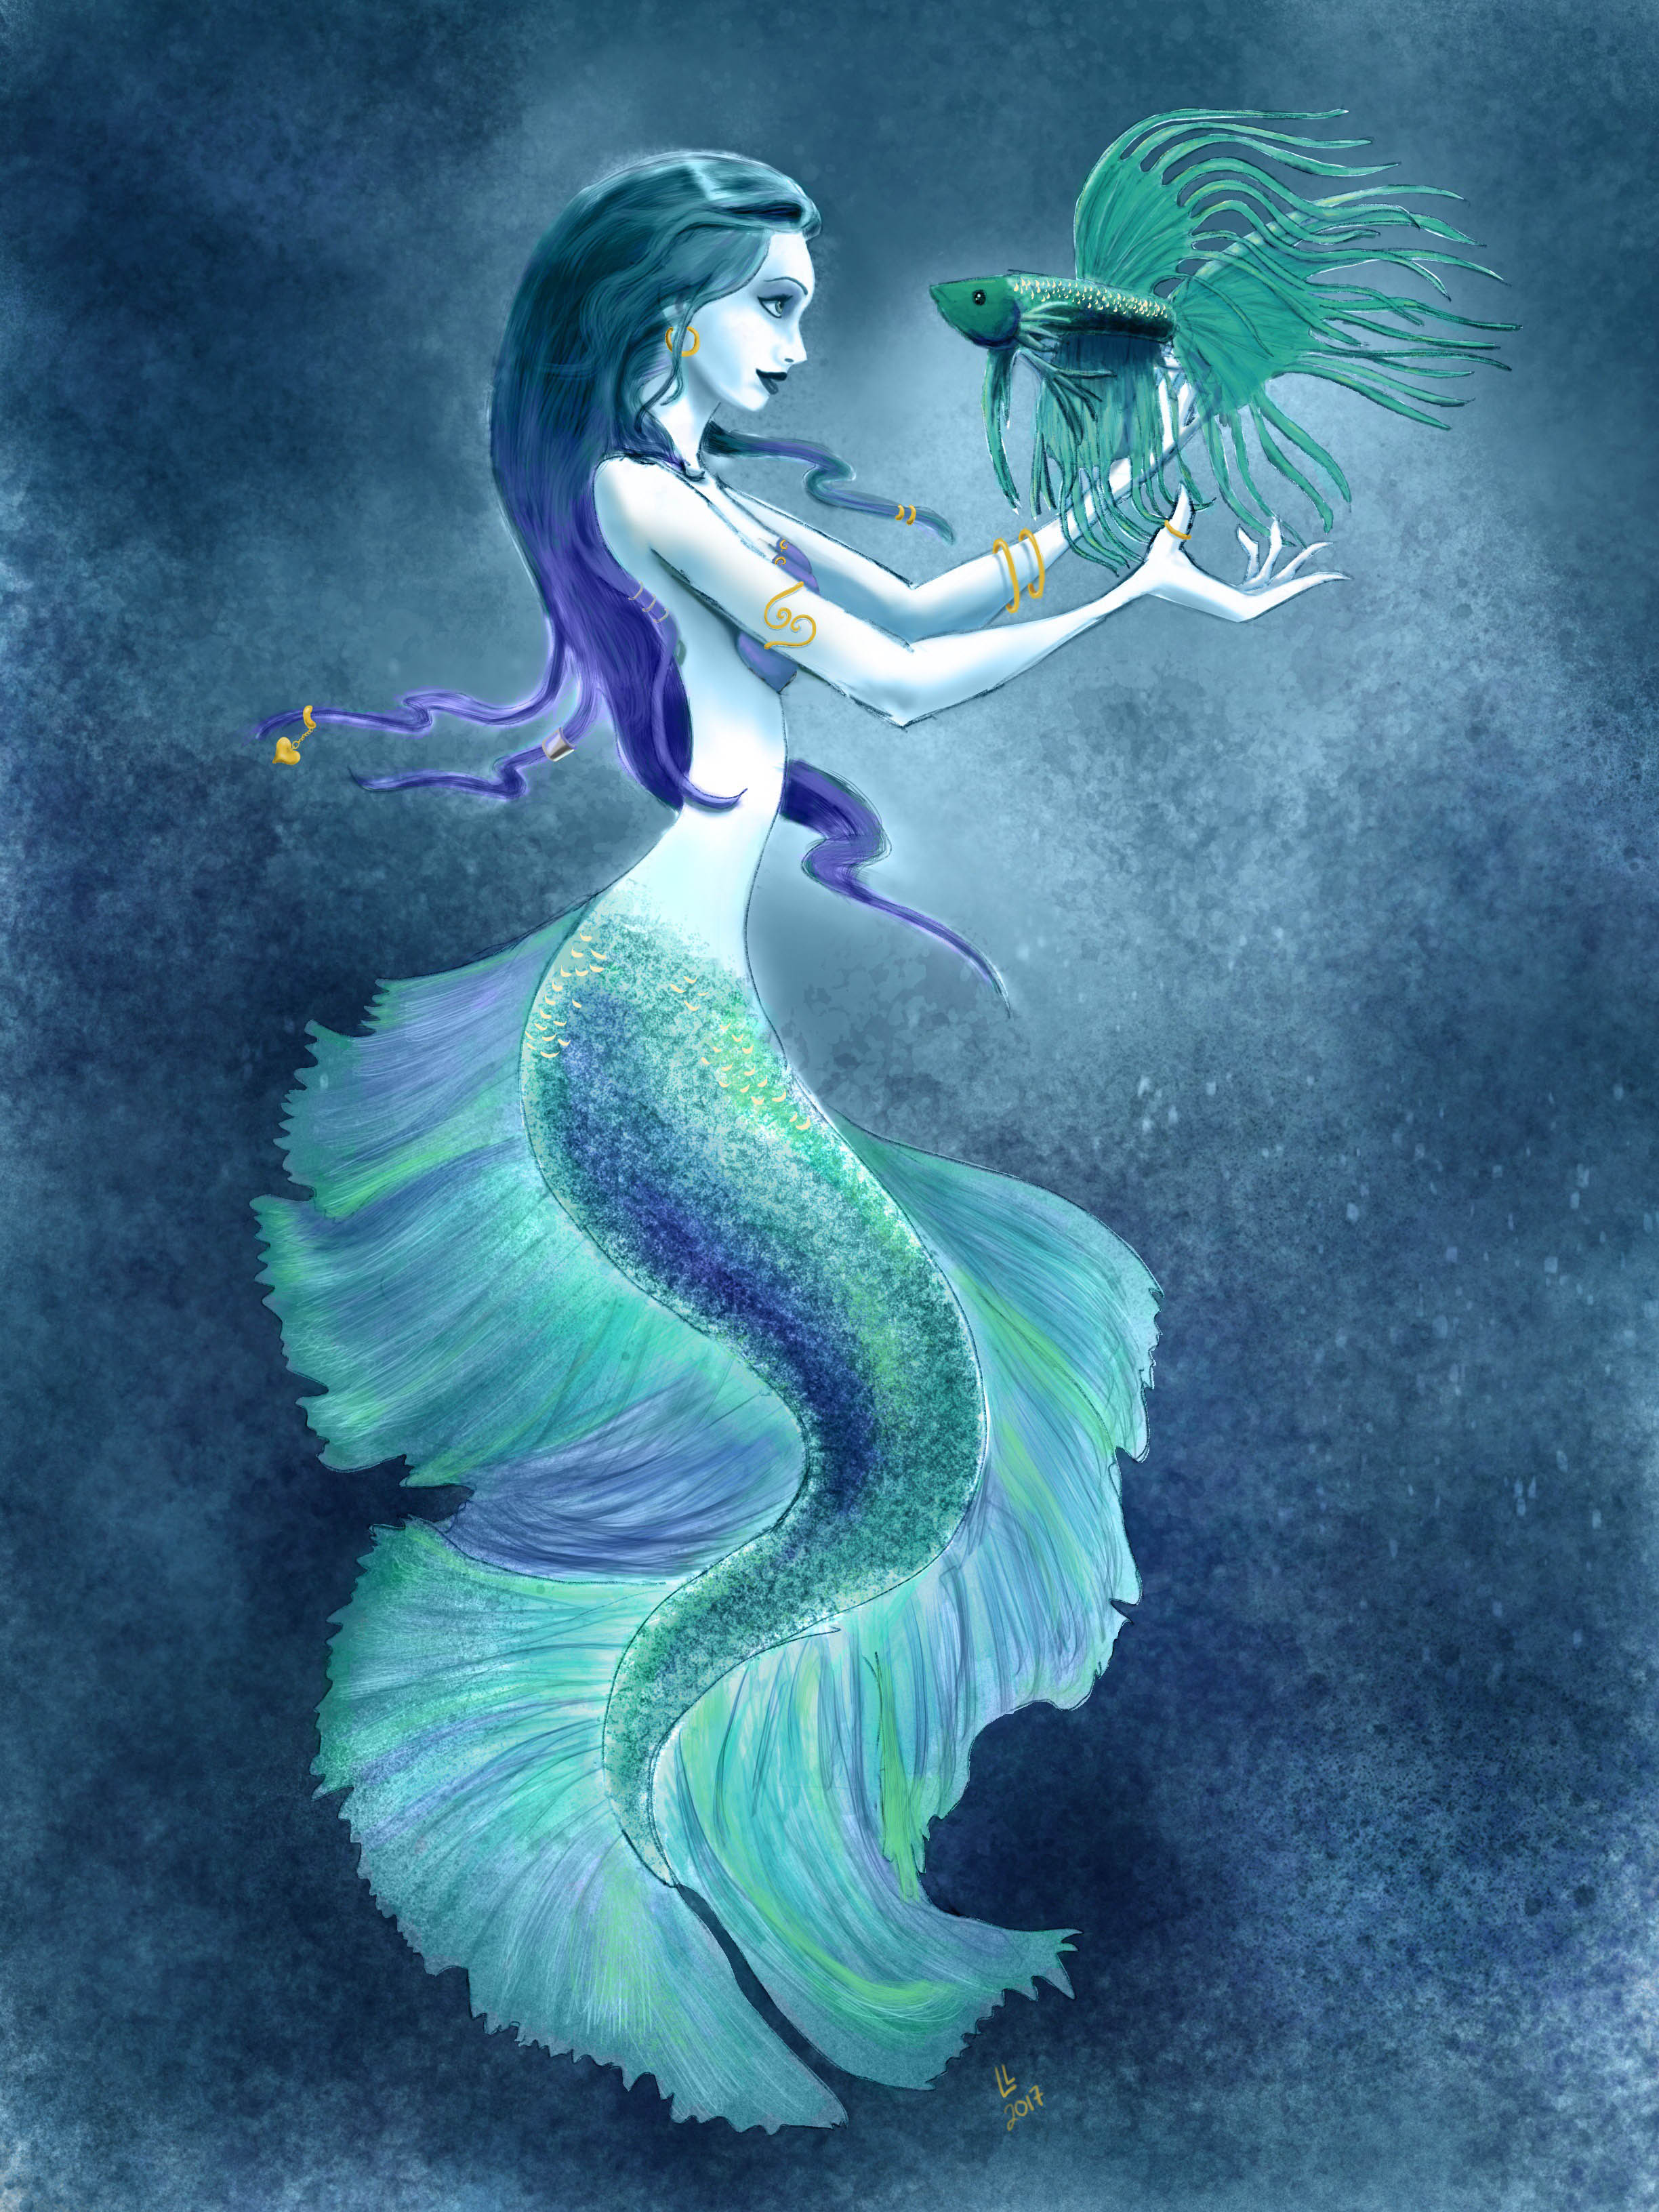 0_1496197576319_Mermaid.jpg